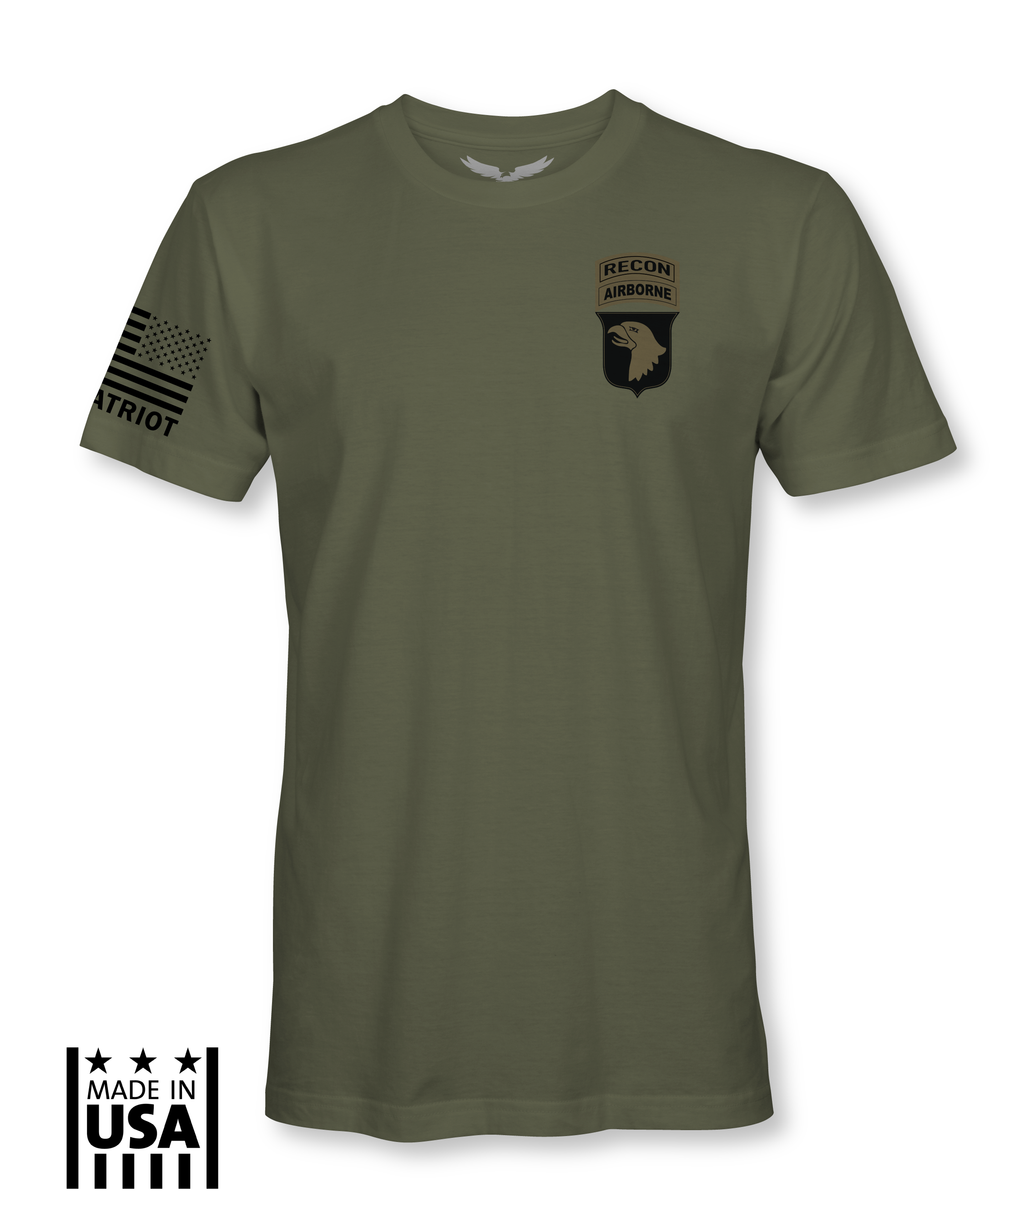 Men's: 101st Airborne - Recon Tab - TruPatriot